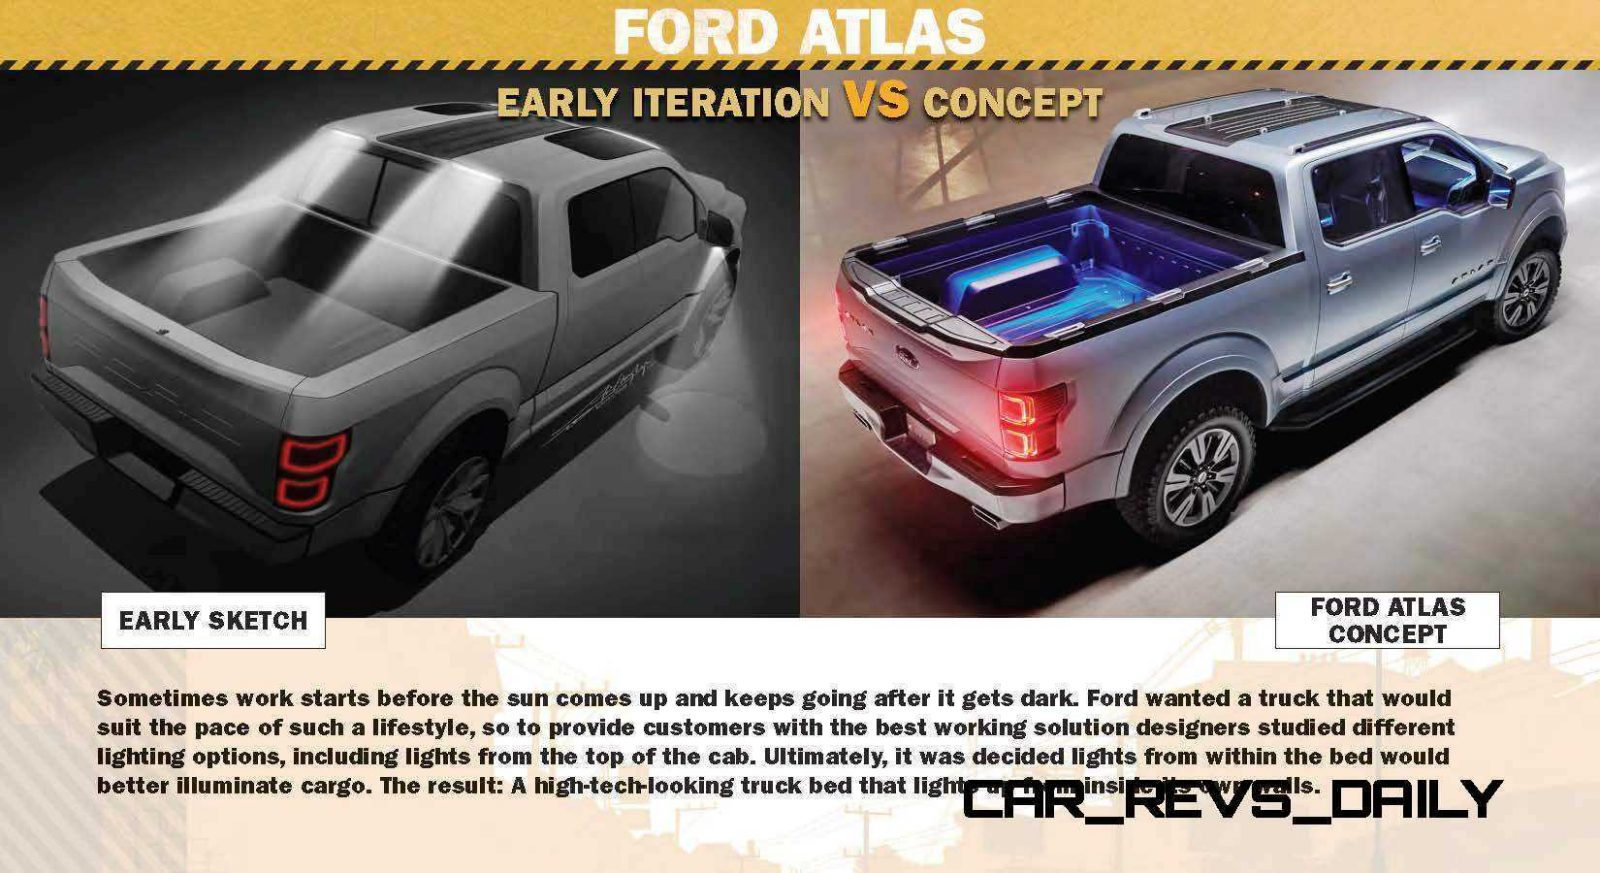 Ford Atlas Concept: Slide 5